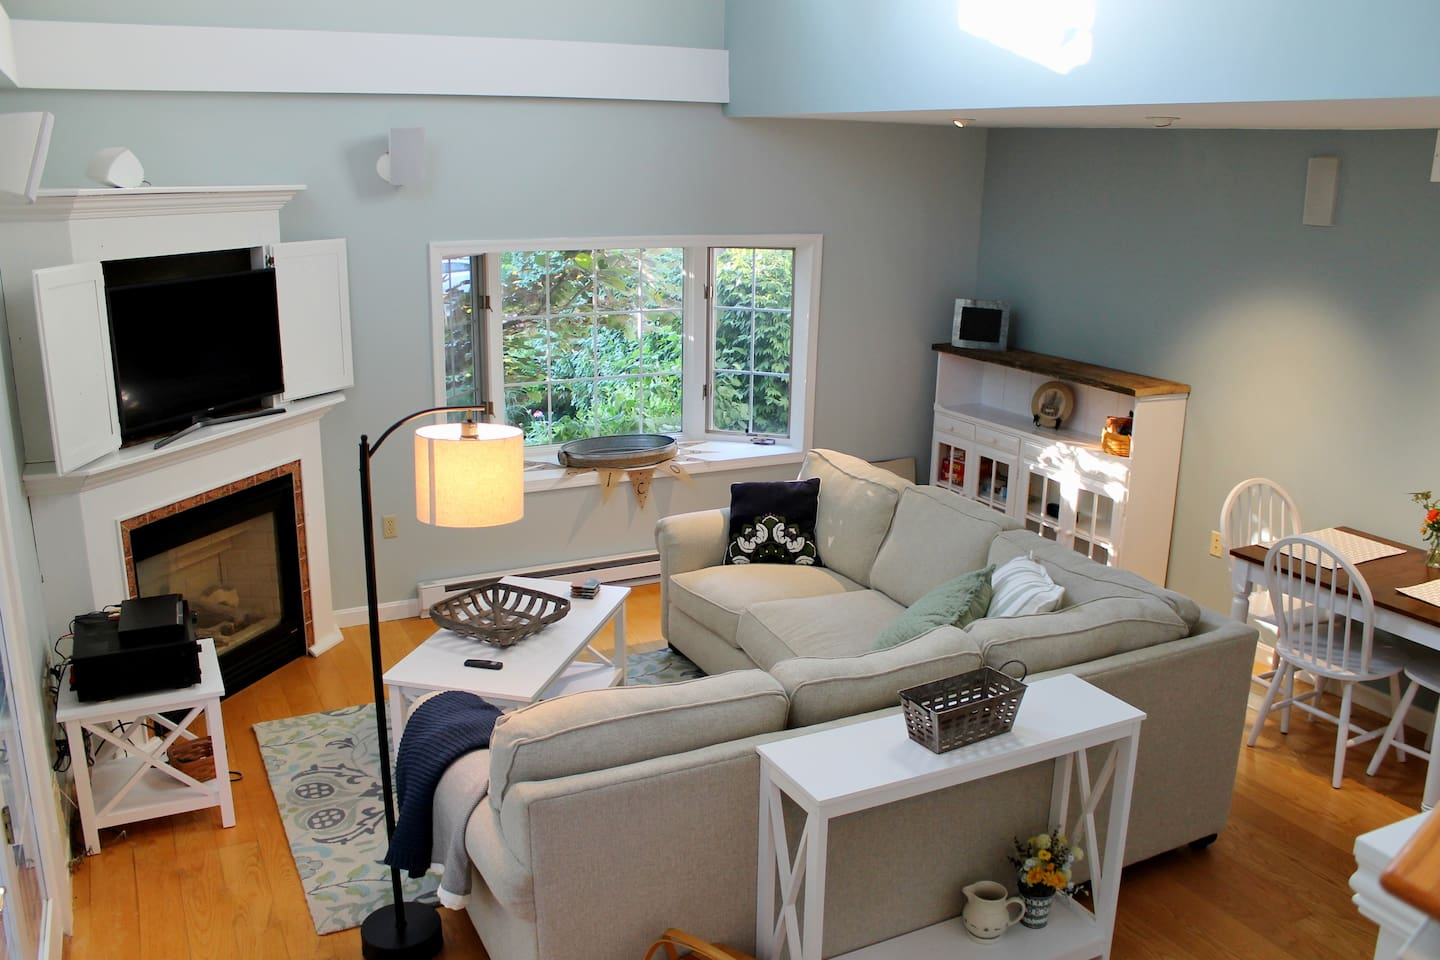 Newly remodeled living area.  Quiet, private and fresh cottage like feel